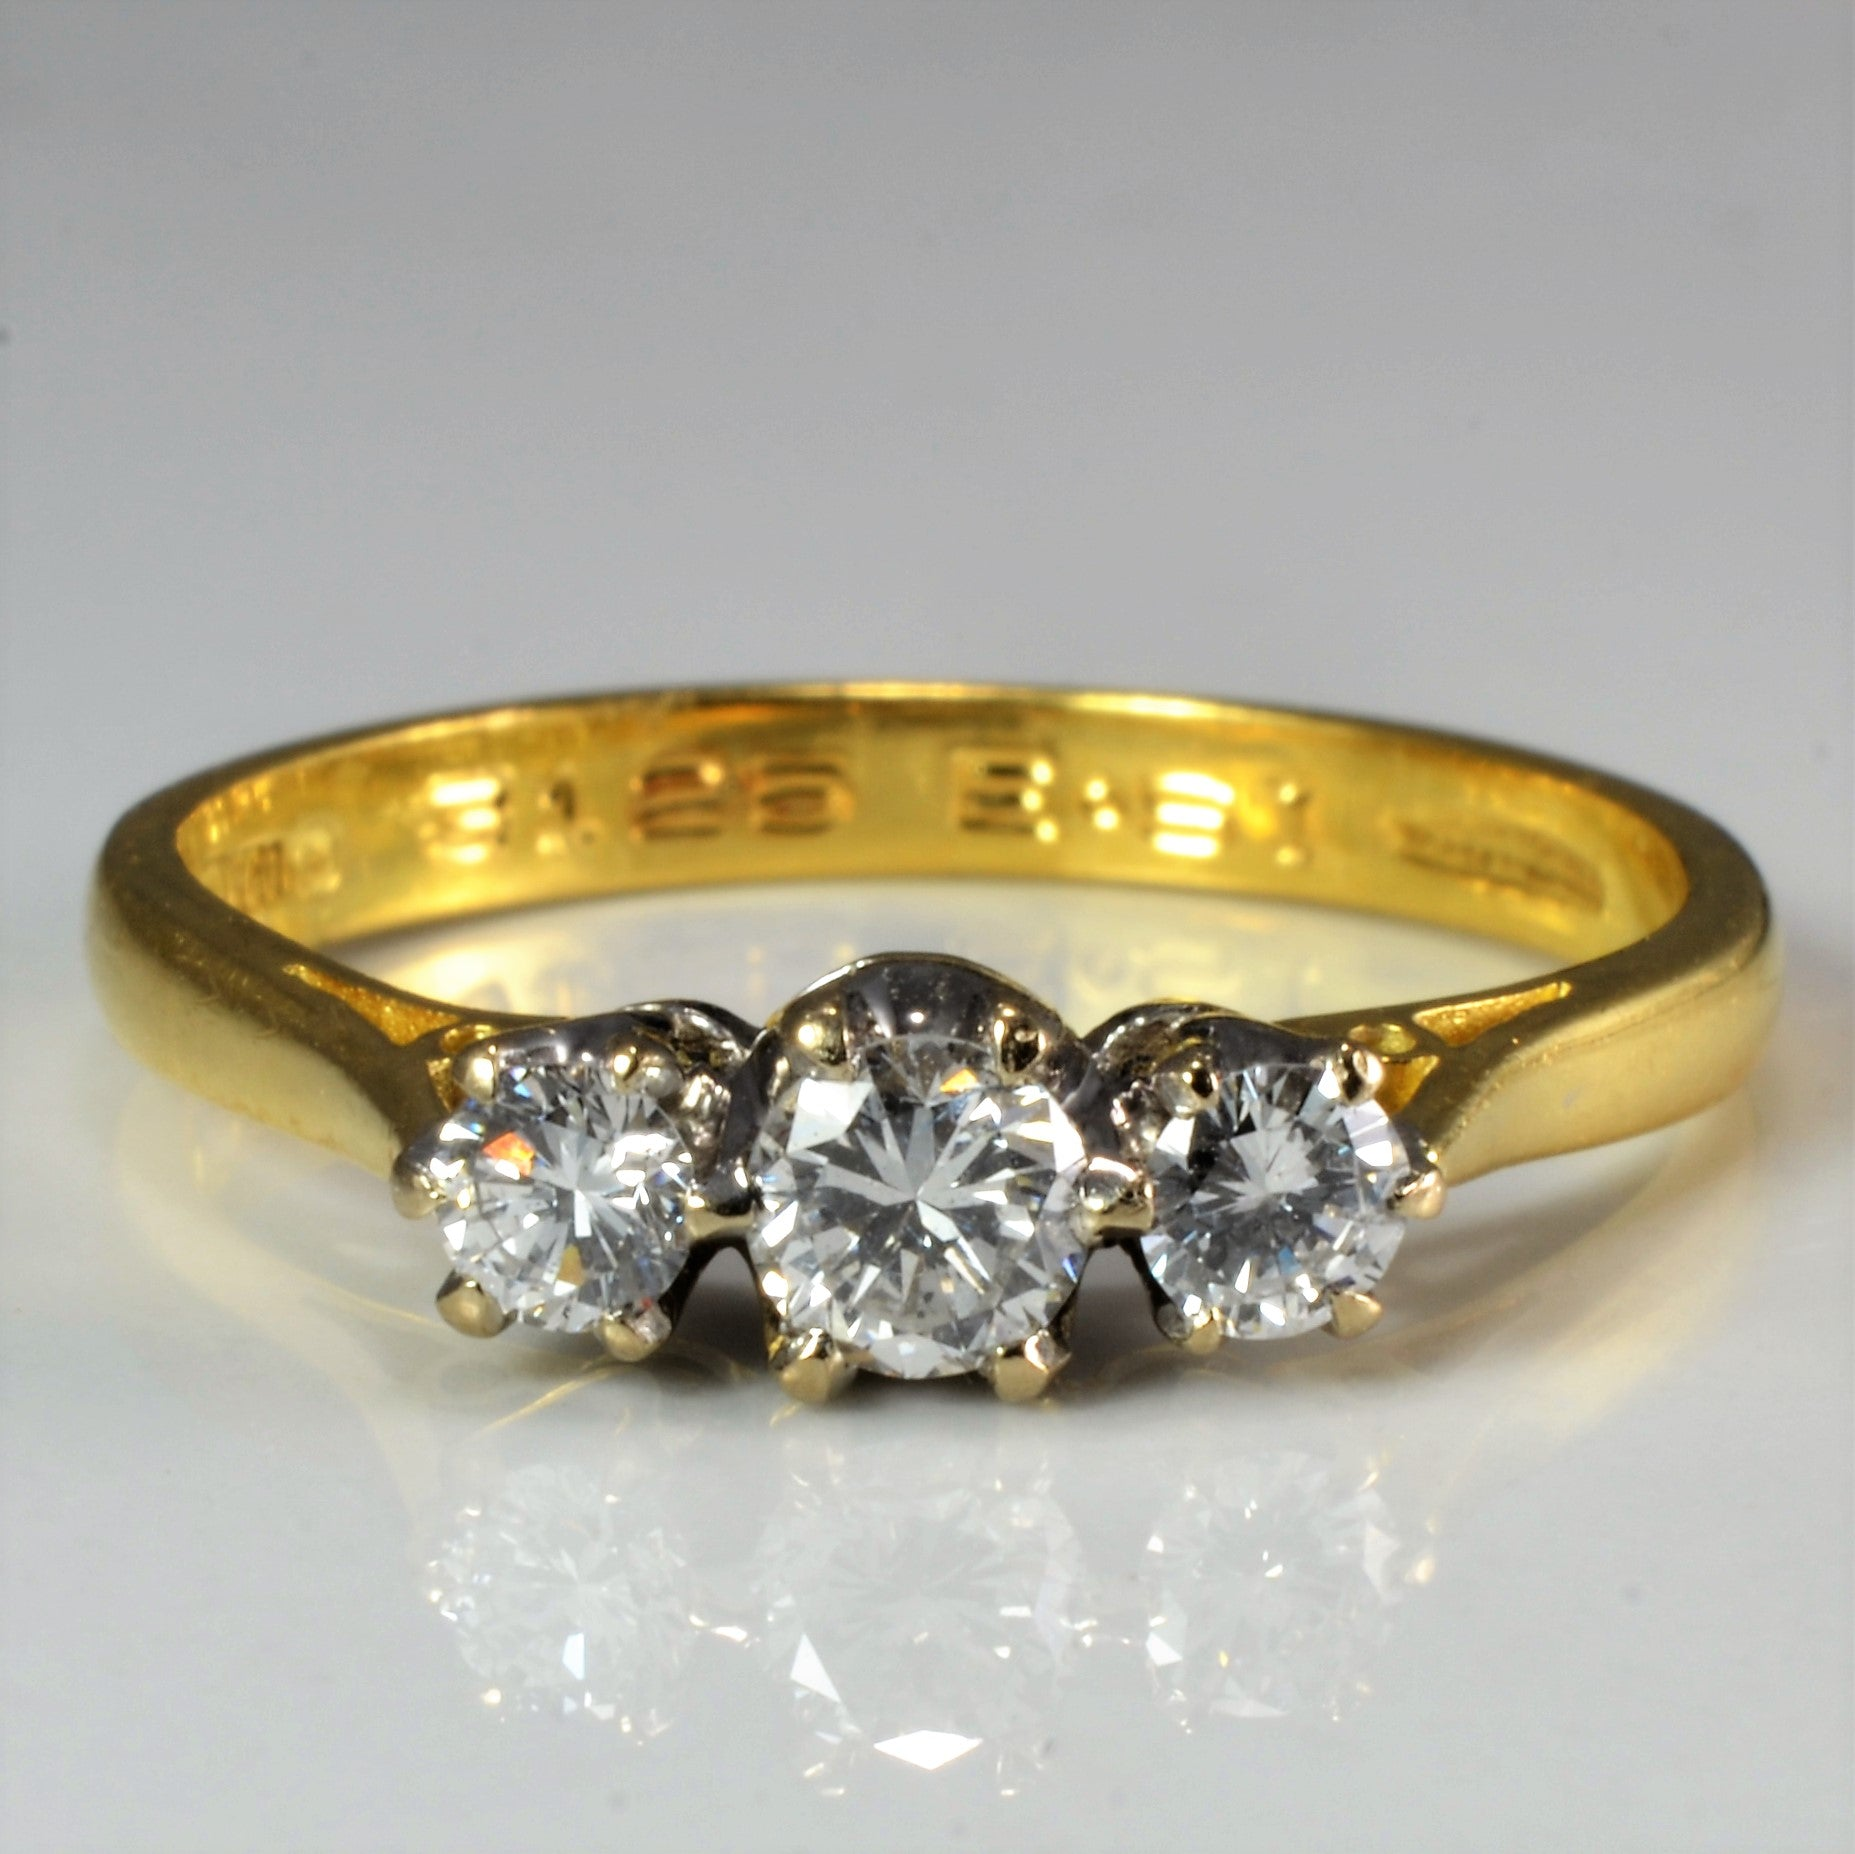 Three Stone Diamond Engagement Ring | 0.37 ctw, SZ 6.75 |